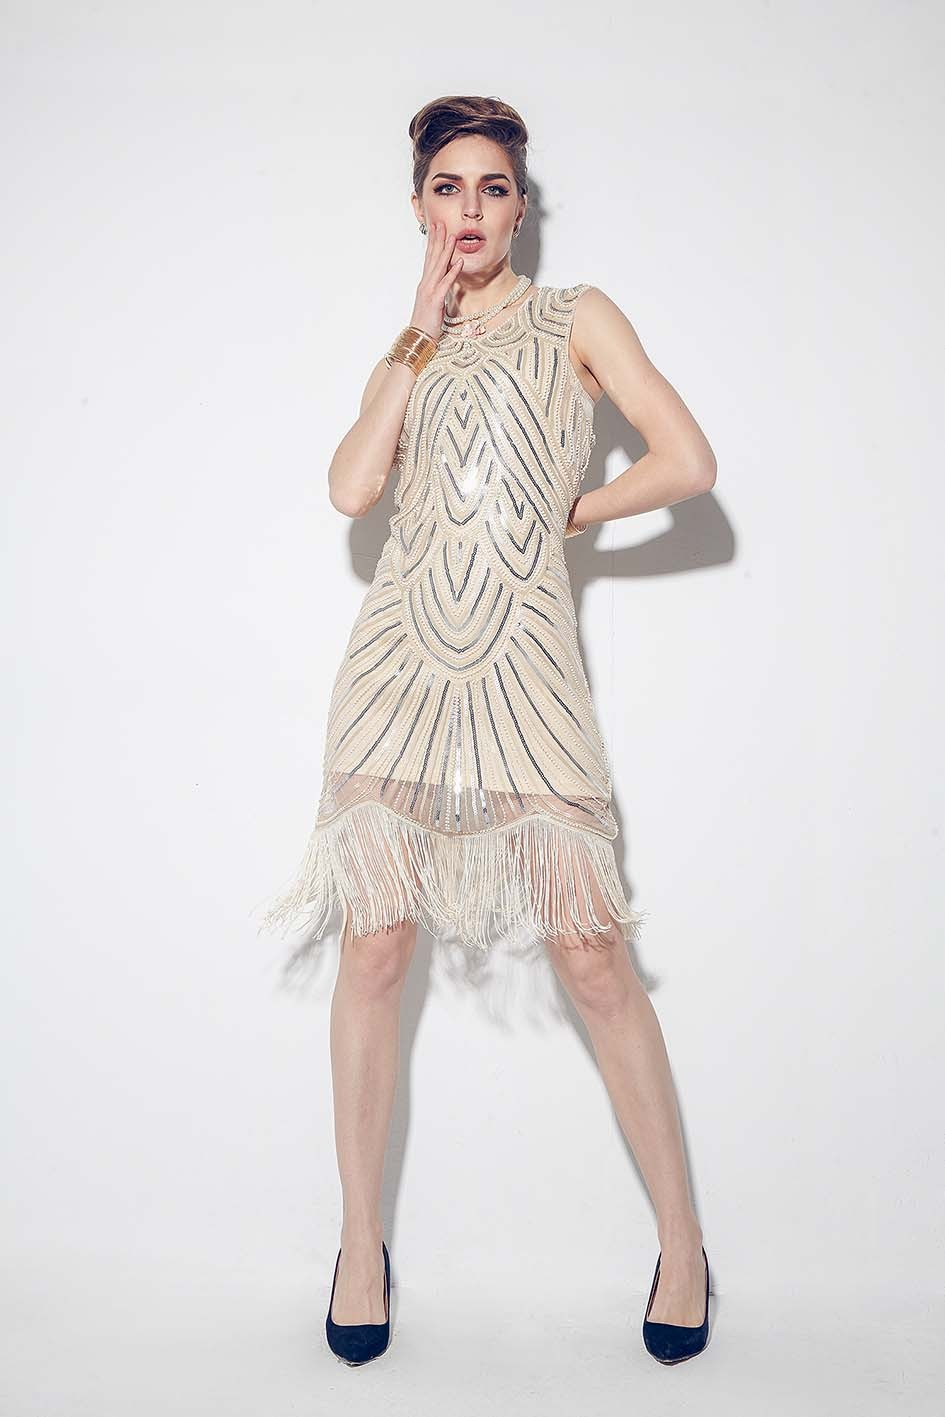 21a4672561ef ... 1920s Great Gatsby Charleston Party Costume Sequin Tassel Flapper Dress  gangster ladies. 1920s flapper dress_lx1001